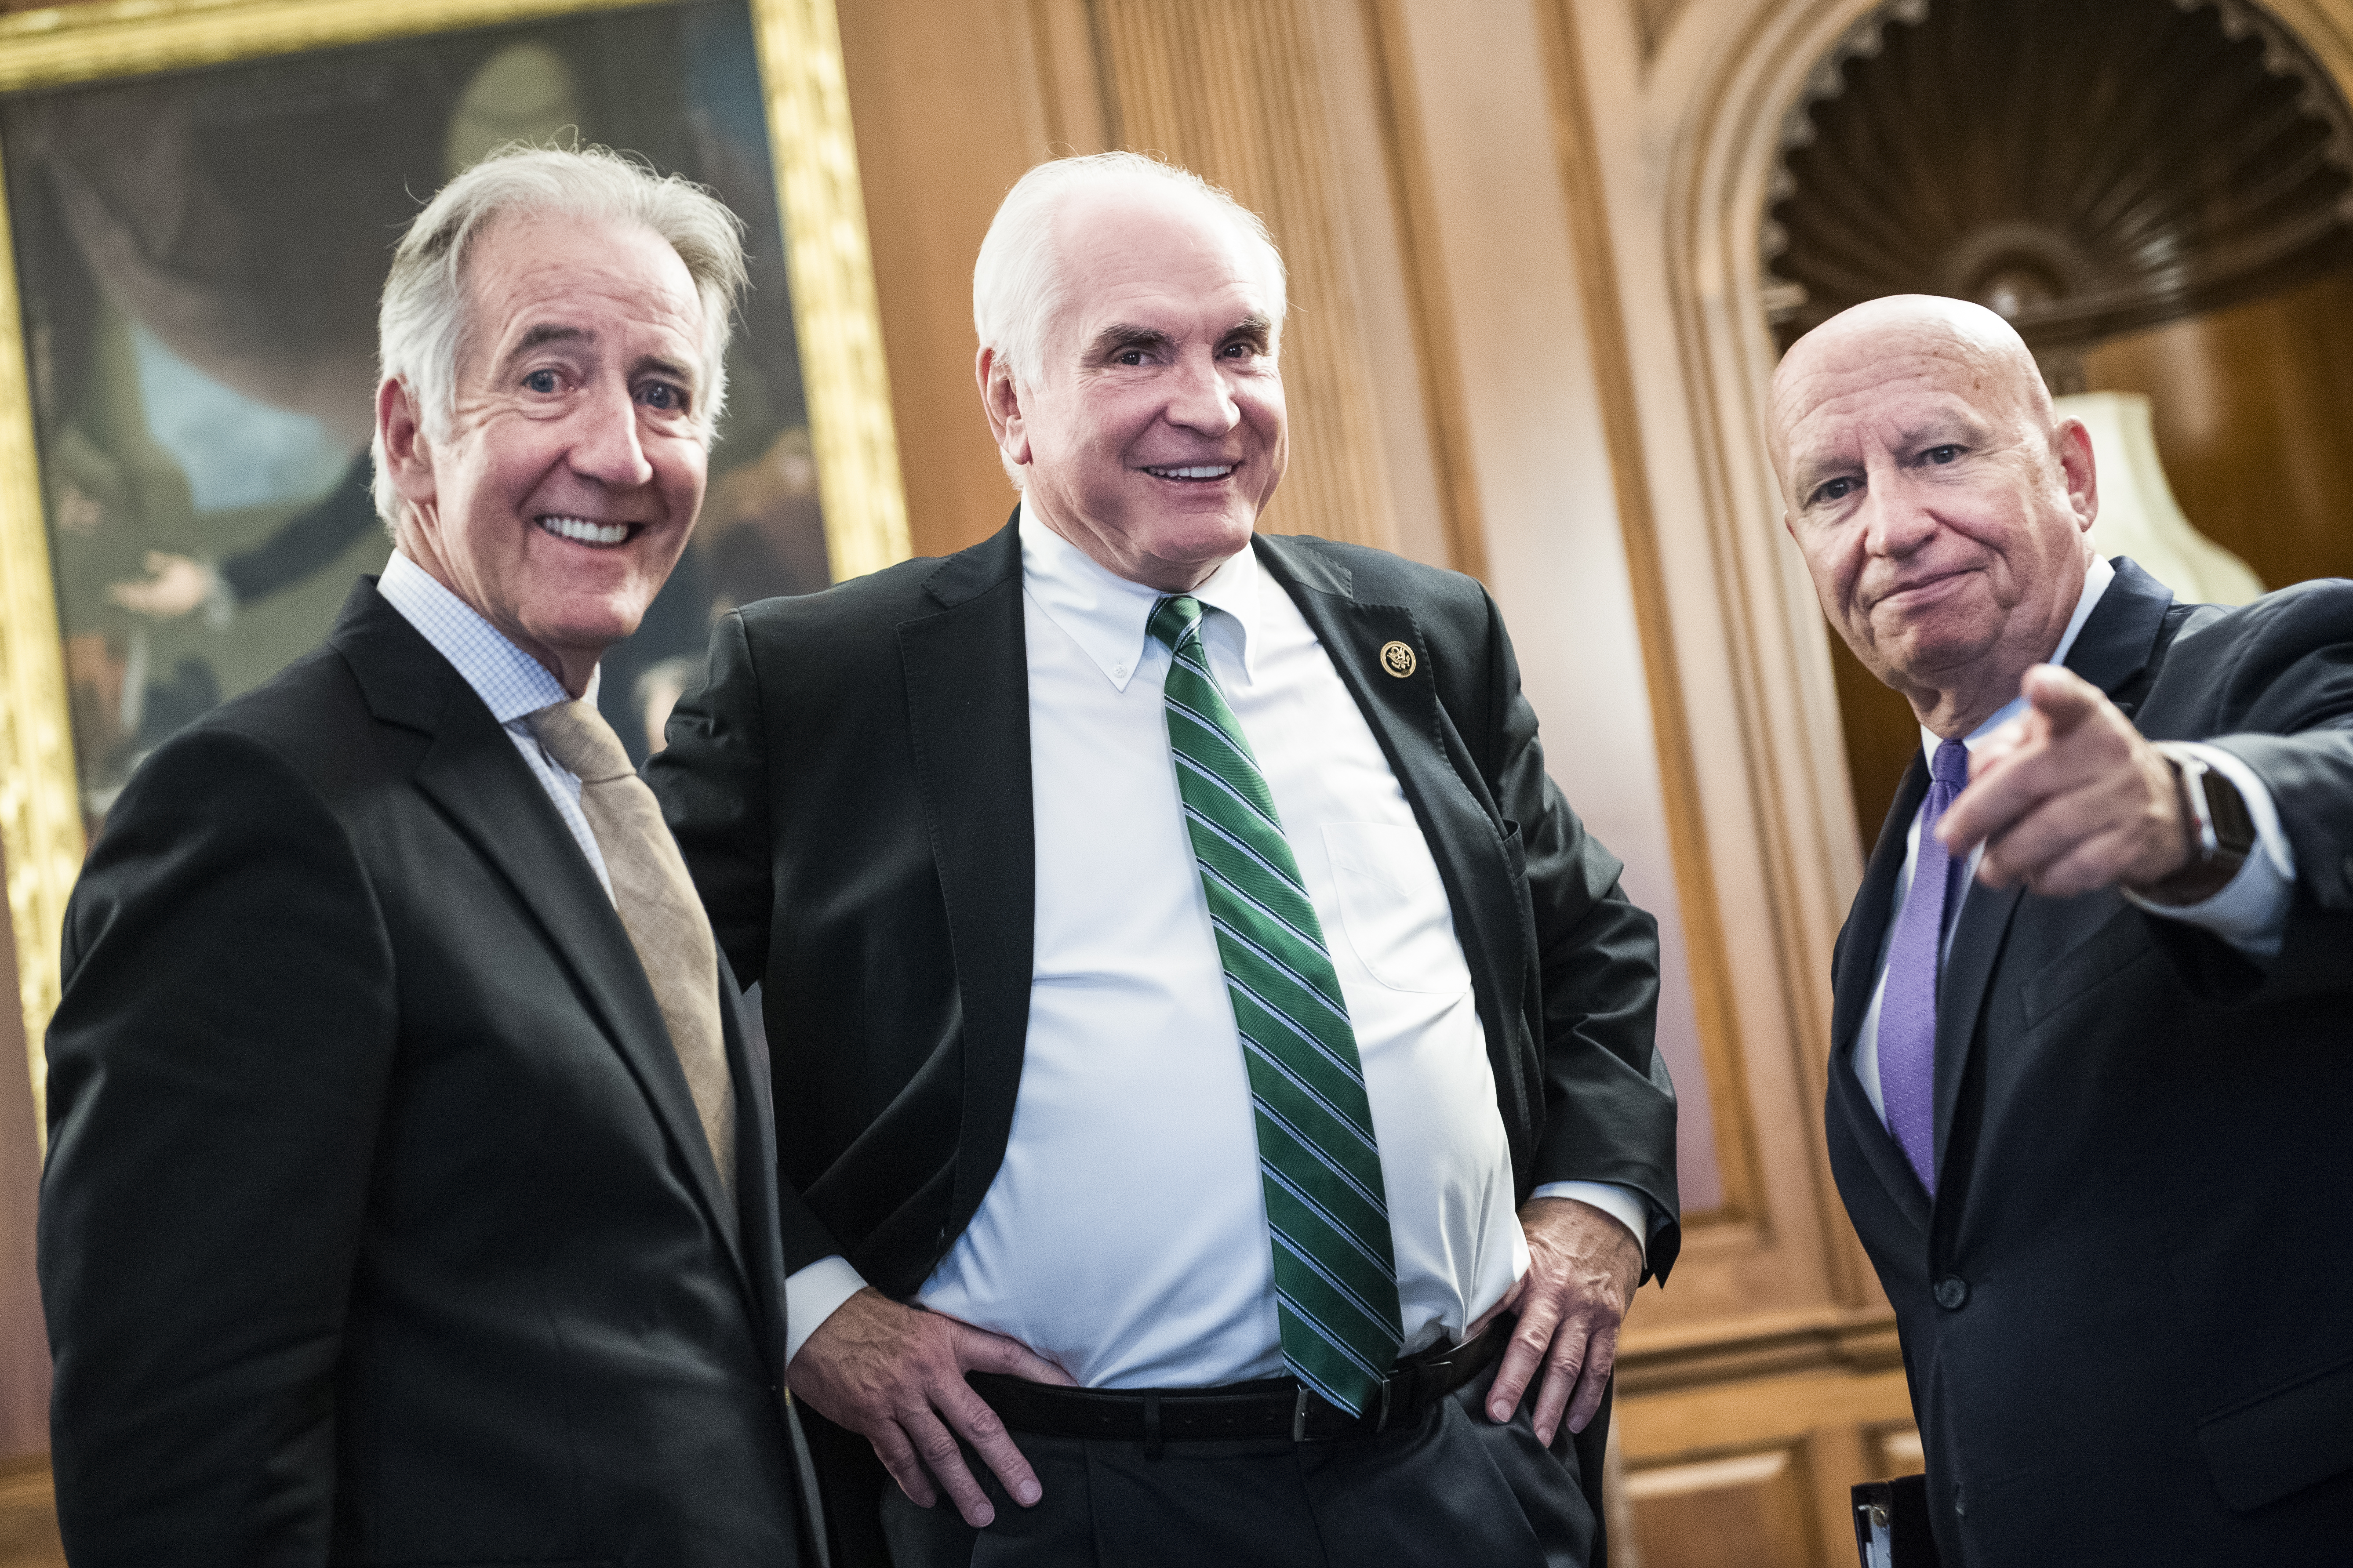 UNITED STATES - JUNE 21: From left, Ways and Means Chairman Richard Neal, D-Mass., Rep. Mike Kelly, R-Pa., and ranking member Kevin Brady, R-Texas, are seen in the Capitol's Rayburn Room before a bill enrollment for the Taxpayer First Act on Friday, June 21, 2019. (Photo By Tom Williams/CQ Roll Call)